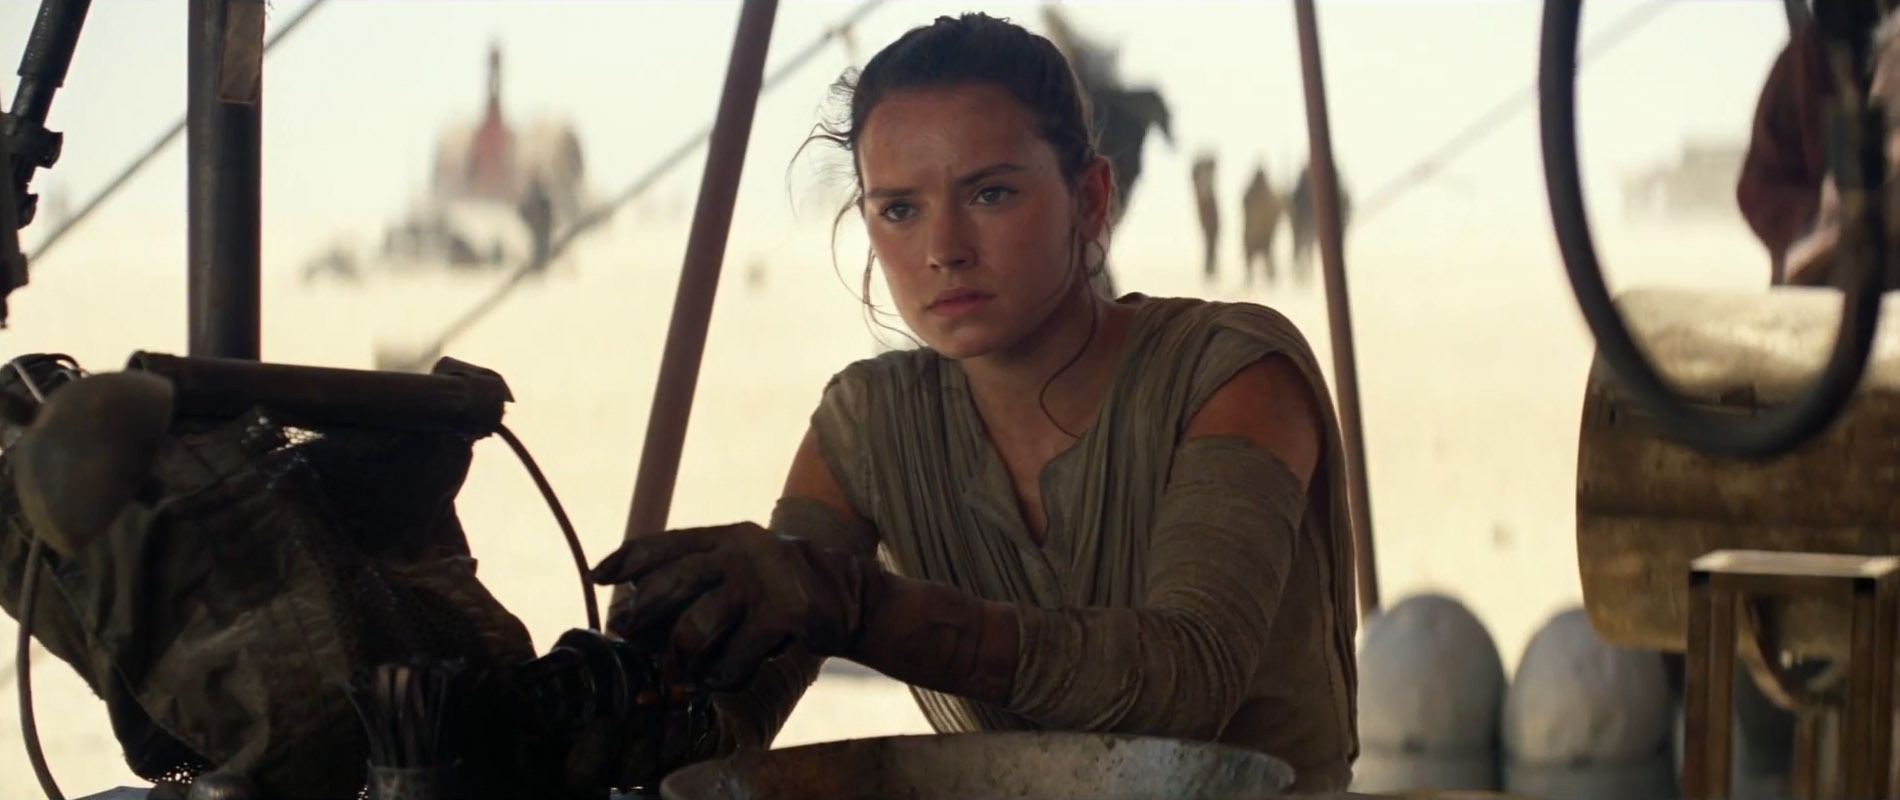 Rey (Walt Disney Studios Motion Pictures)